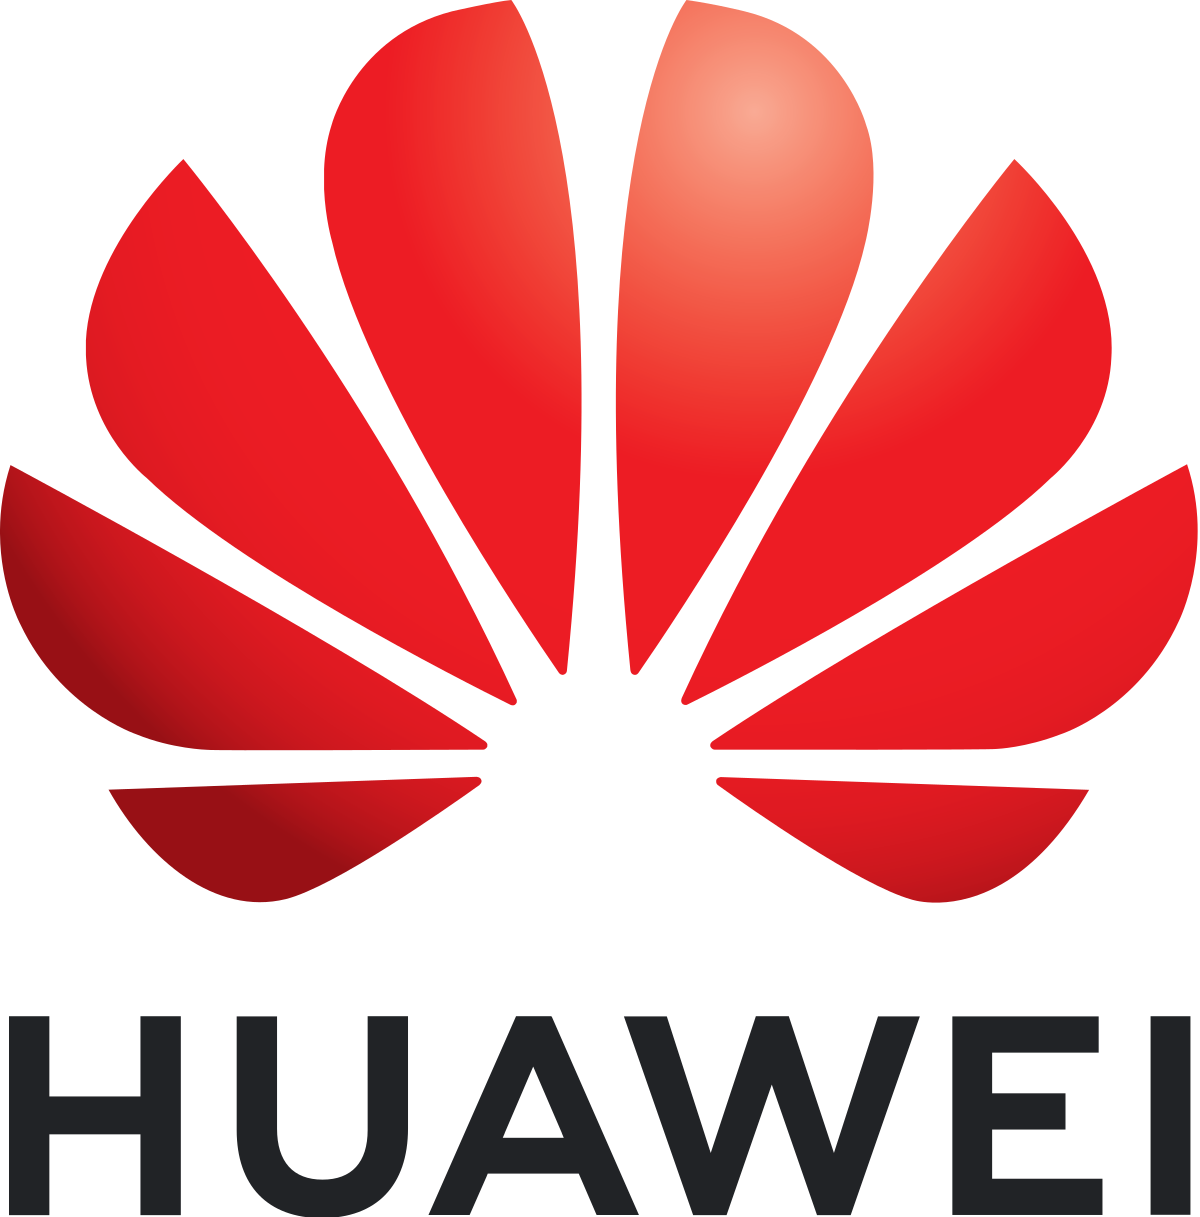 limited-time-offer-up-to-30-off-on-huawei-computers-tablets-earphones-and-smart-watches-2021-4-21